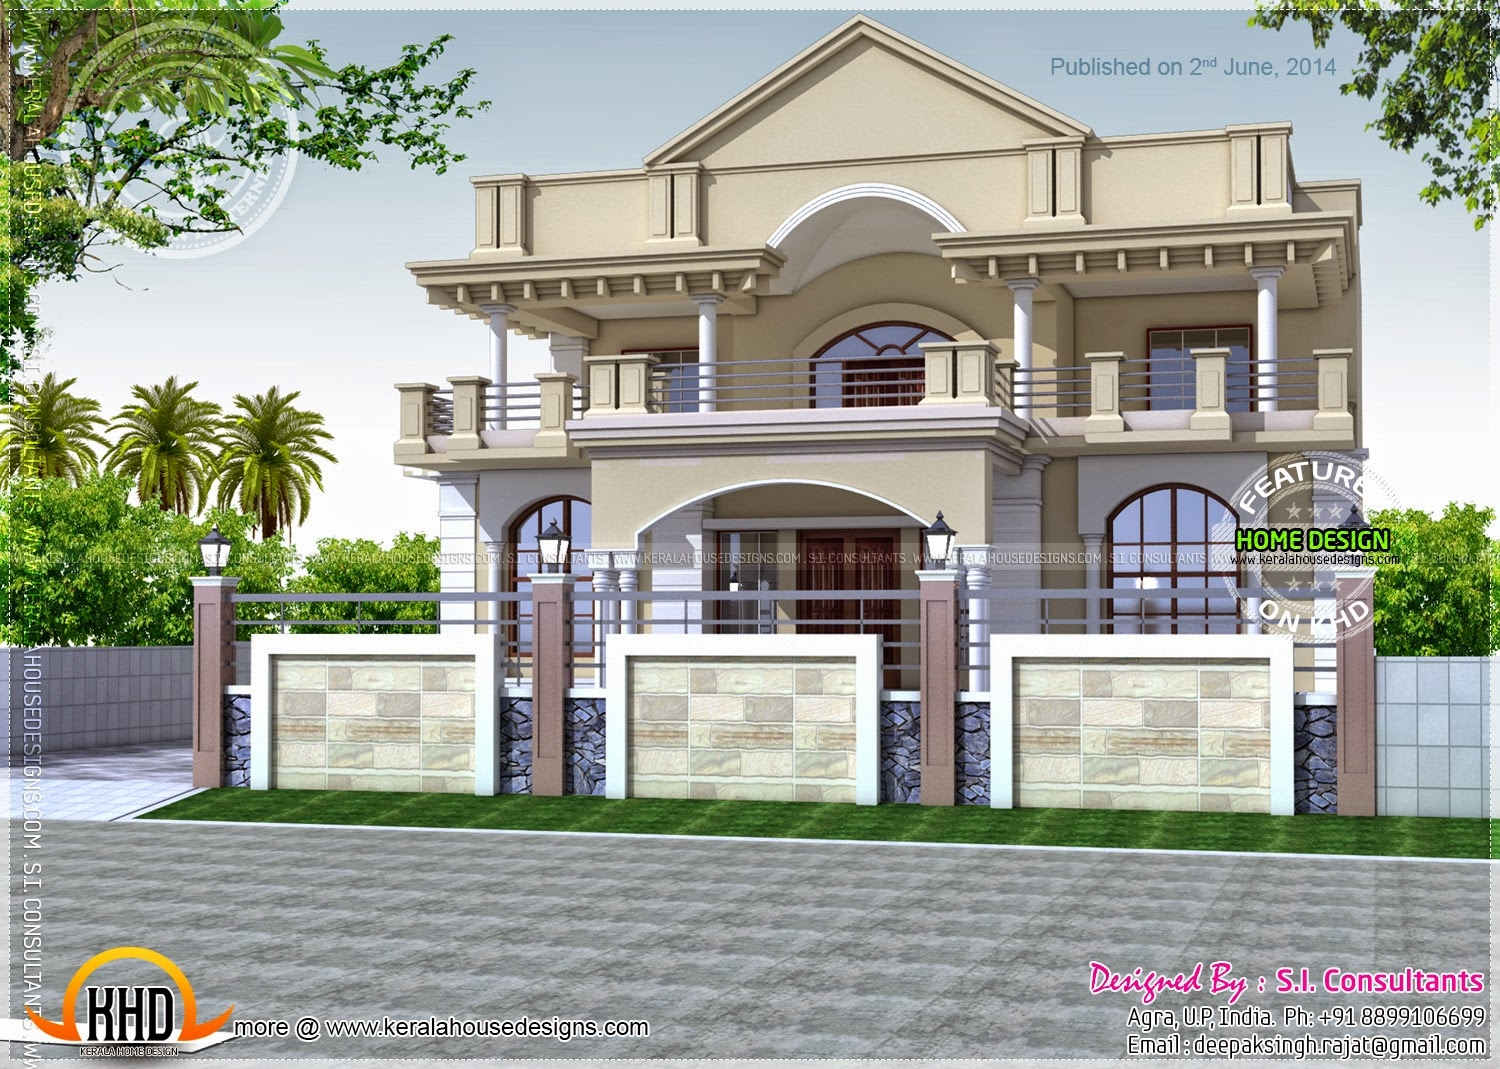 beautiful house designs exterior exterior house designs indian style home design plans dot to GXAXGSW